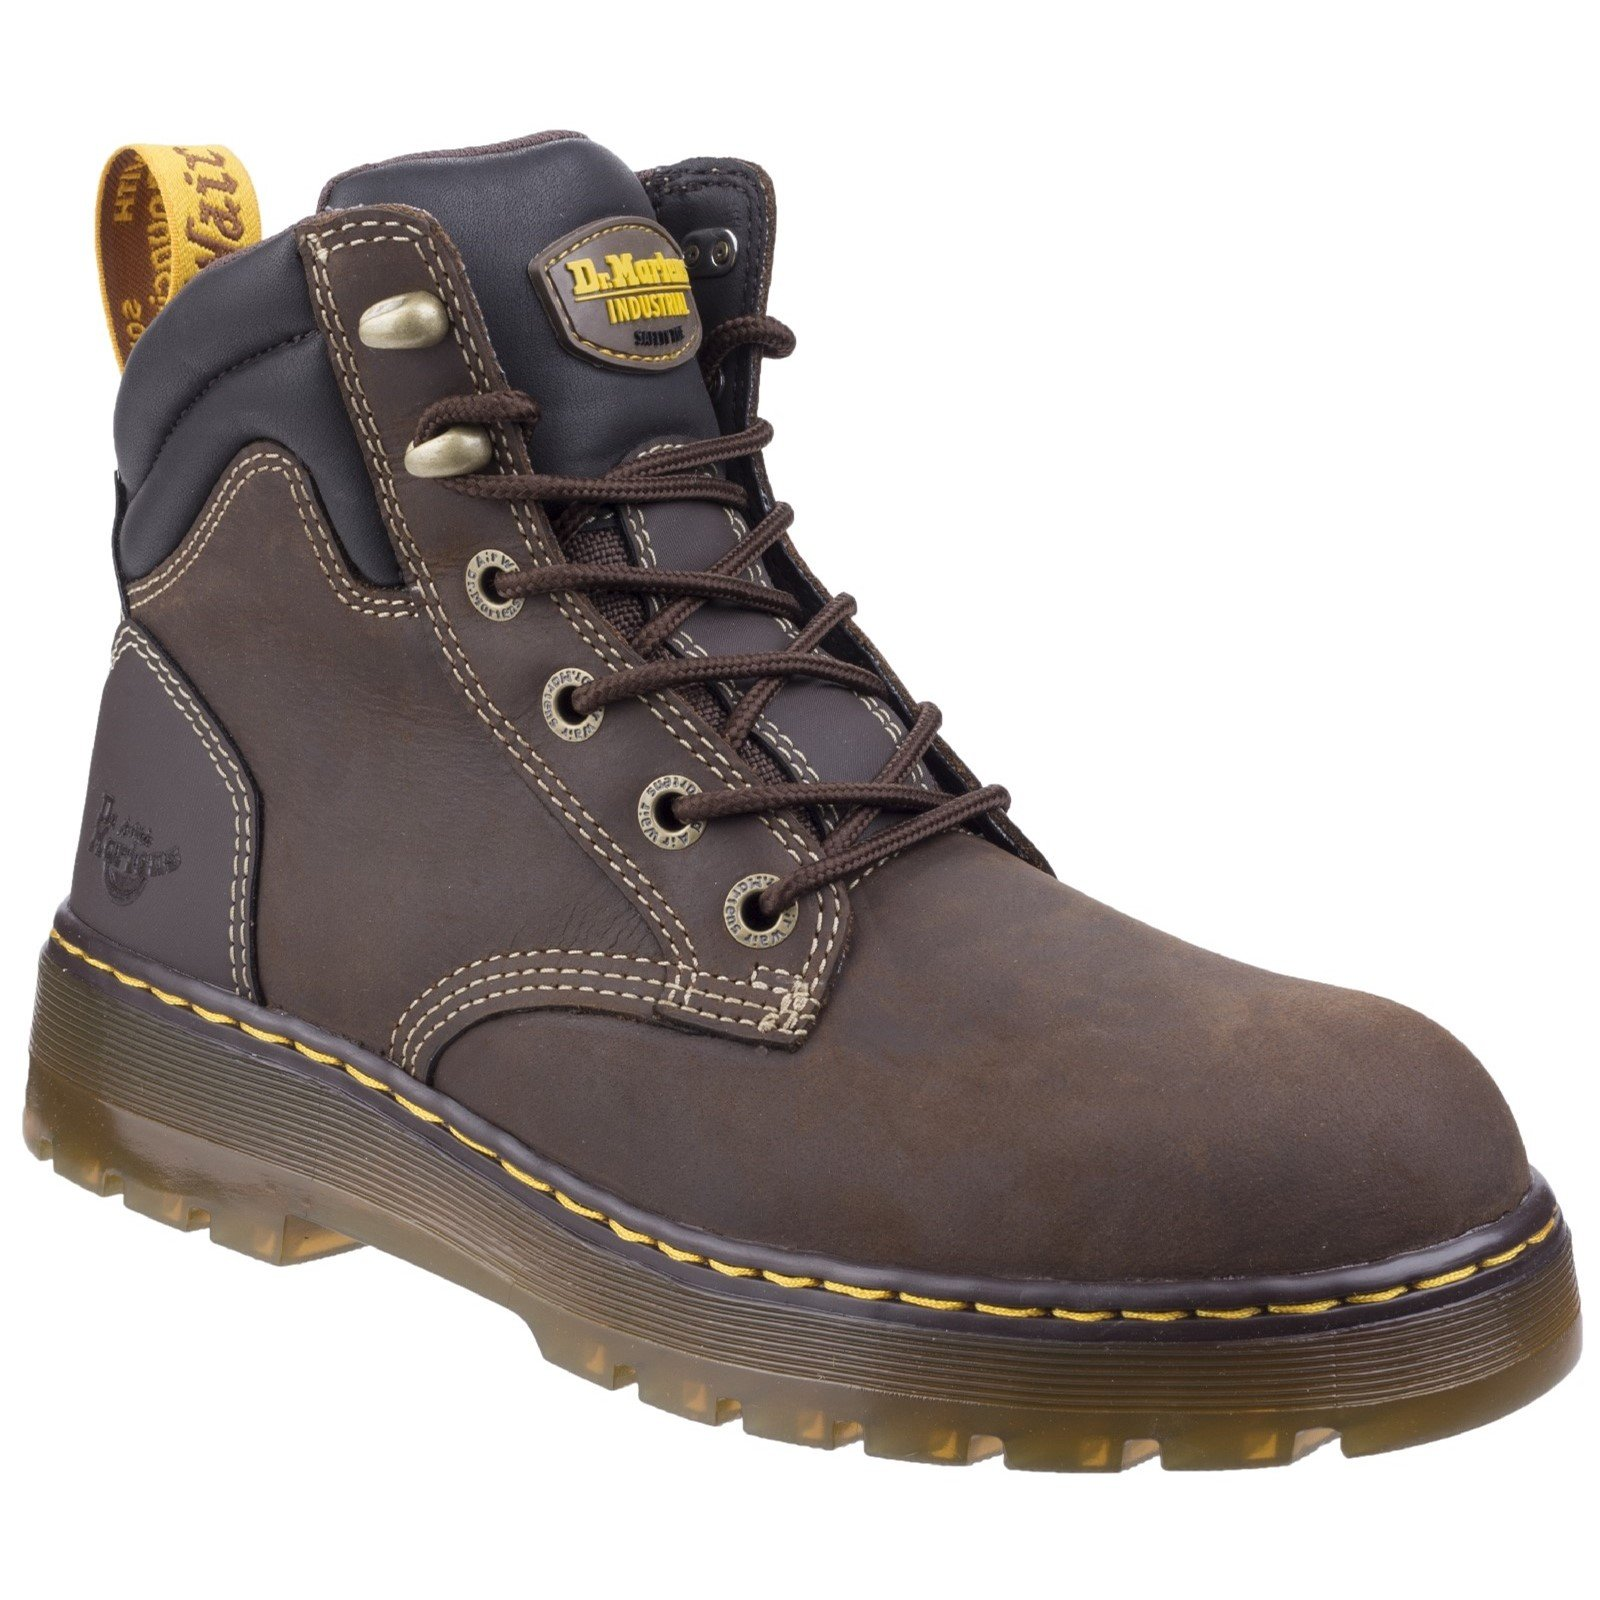 Dr Martens Unisex Brace Hiking Style Safety Boot Various Colours 27702-46606 - Dark Brown Republic 5